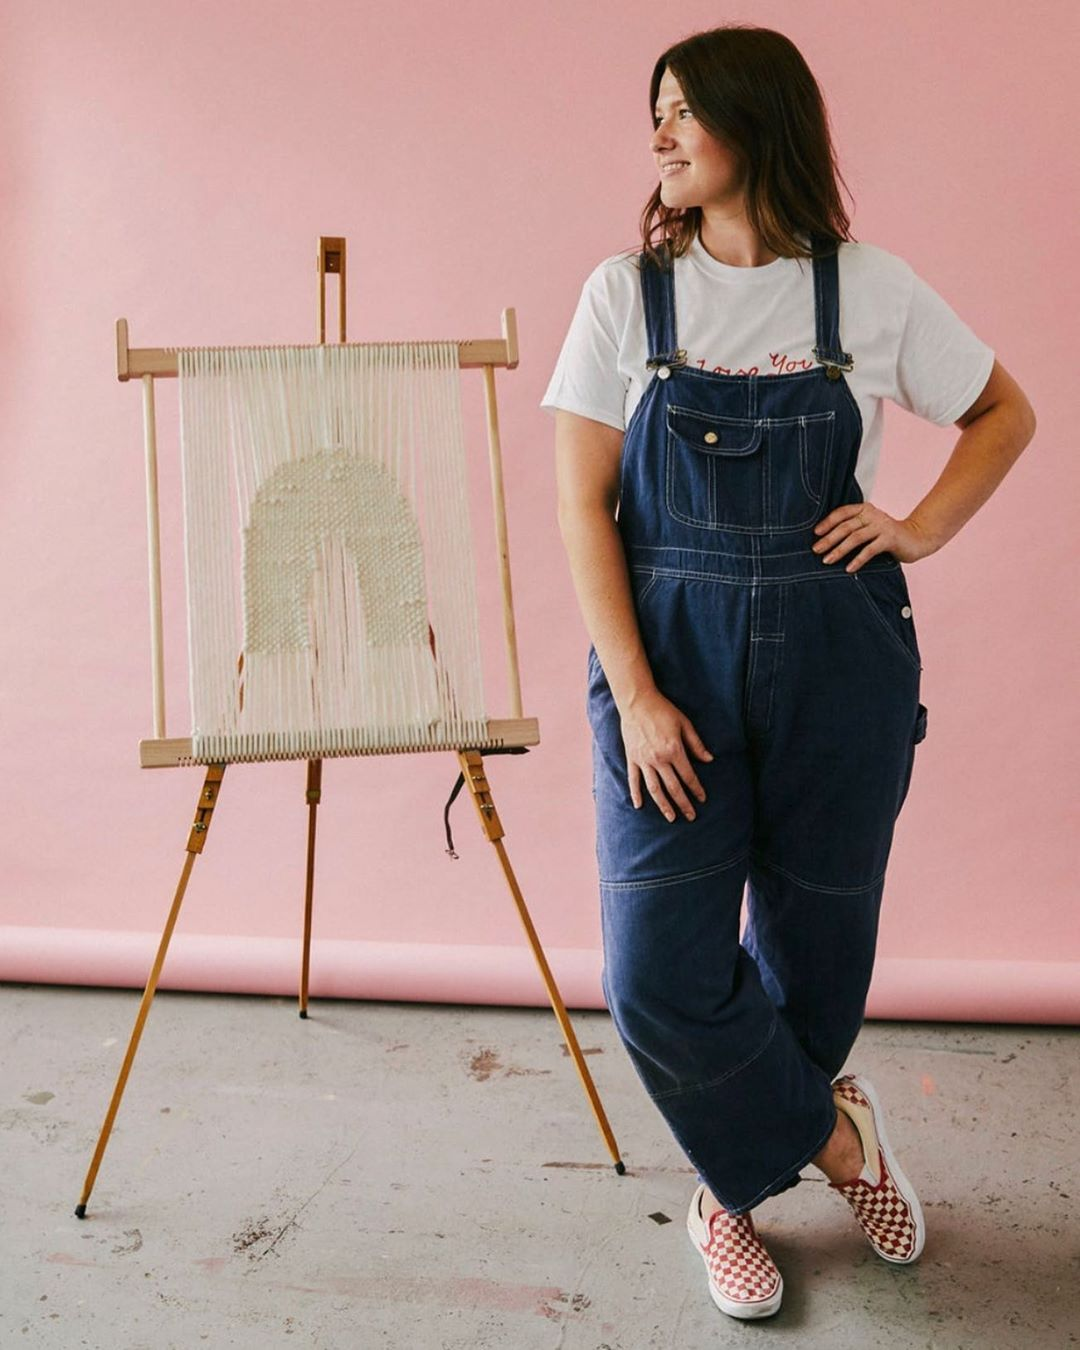 Rachel Wood wearing denim overalls and a white t-shirt posed next to her woven artwork